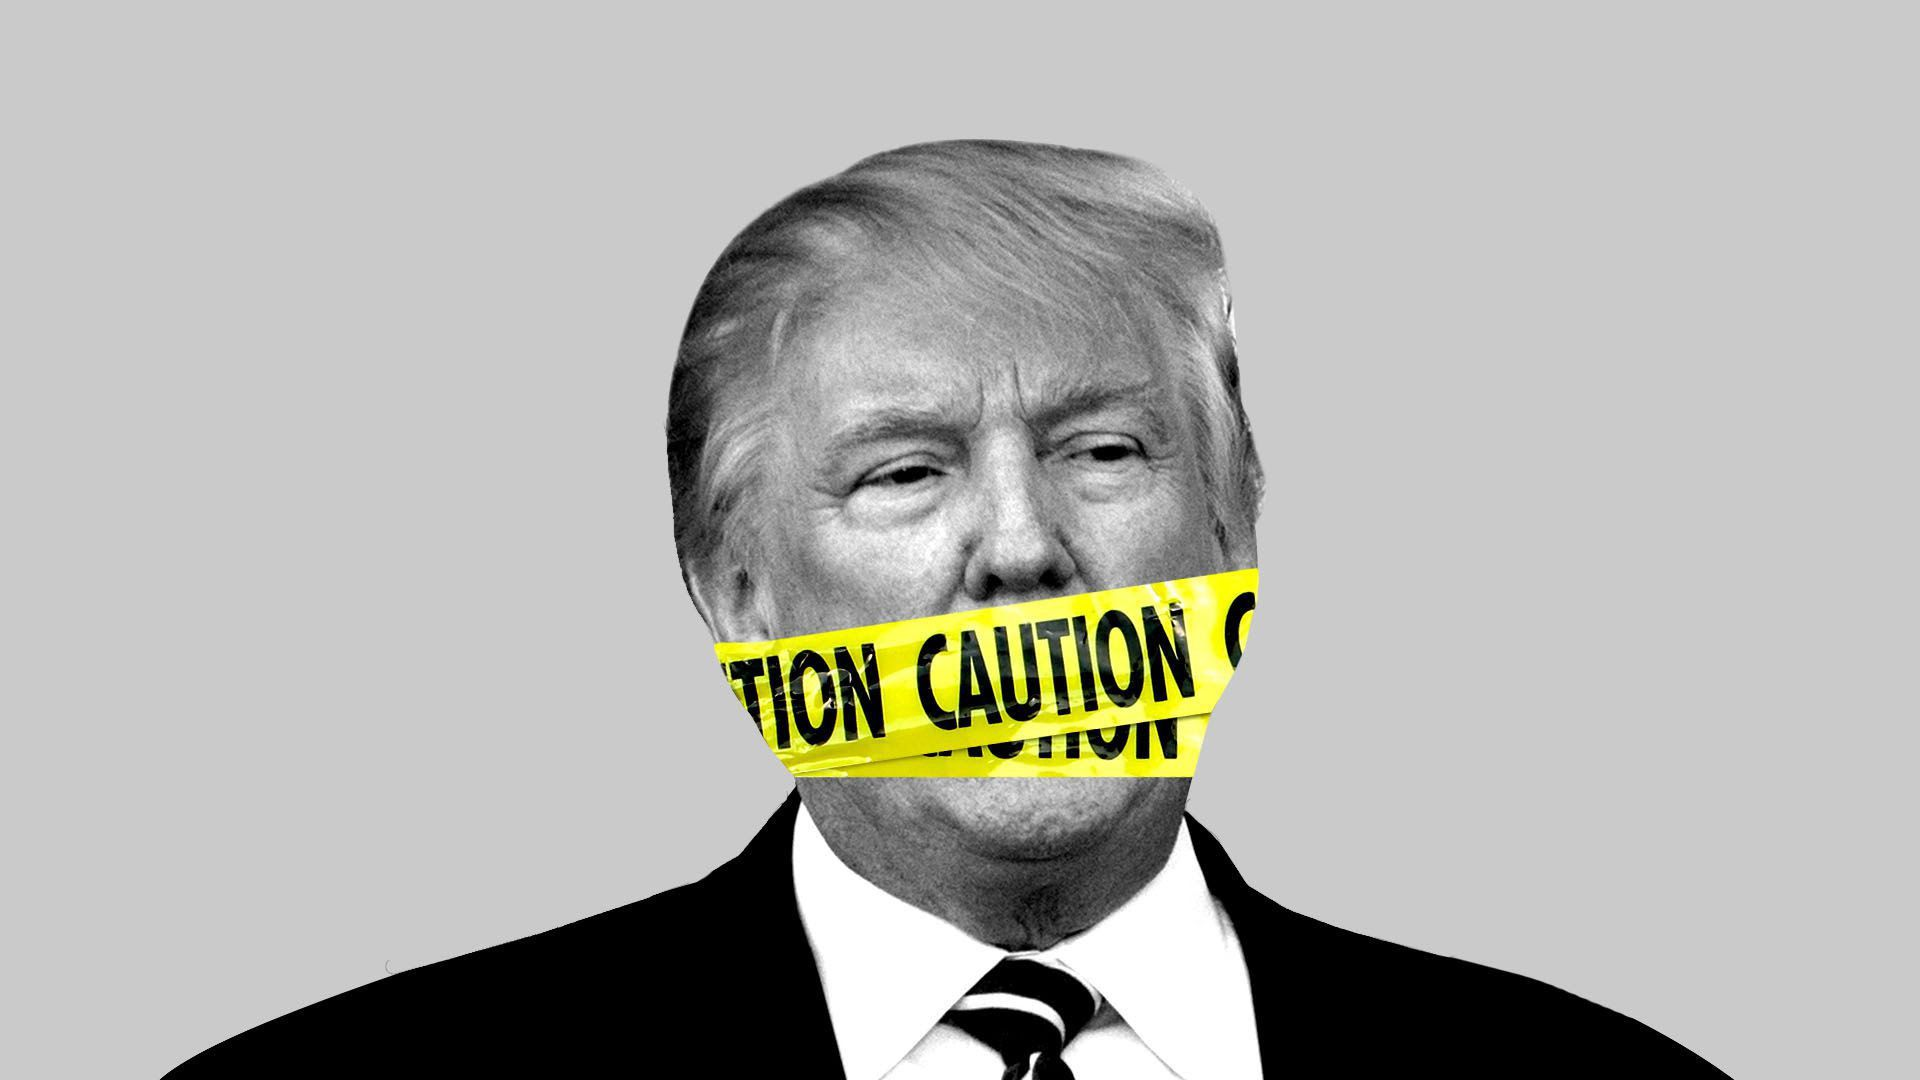 Axios illustration of caution tape wrapped around President Trump's mouth